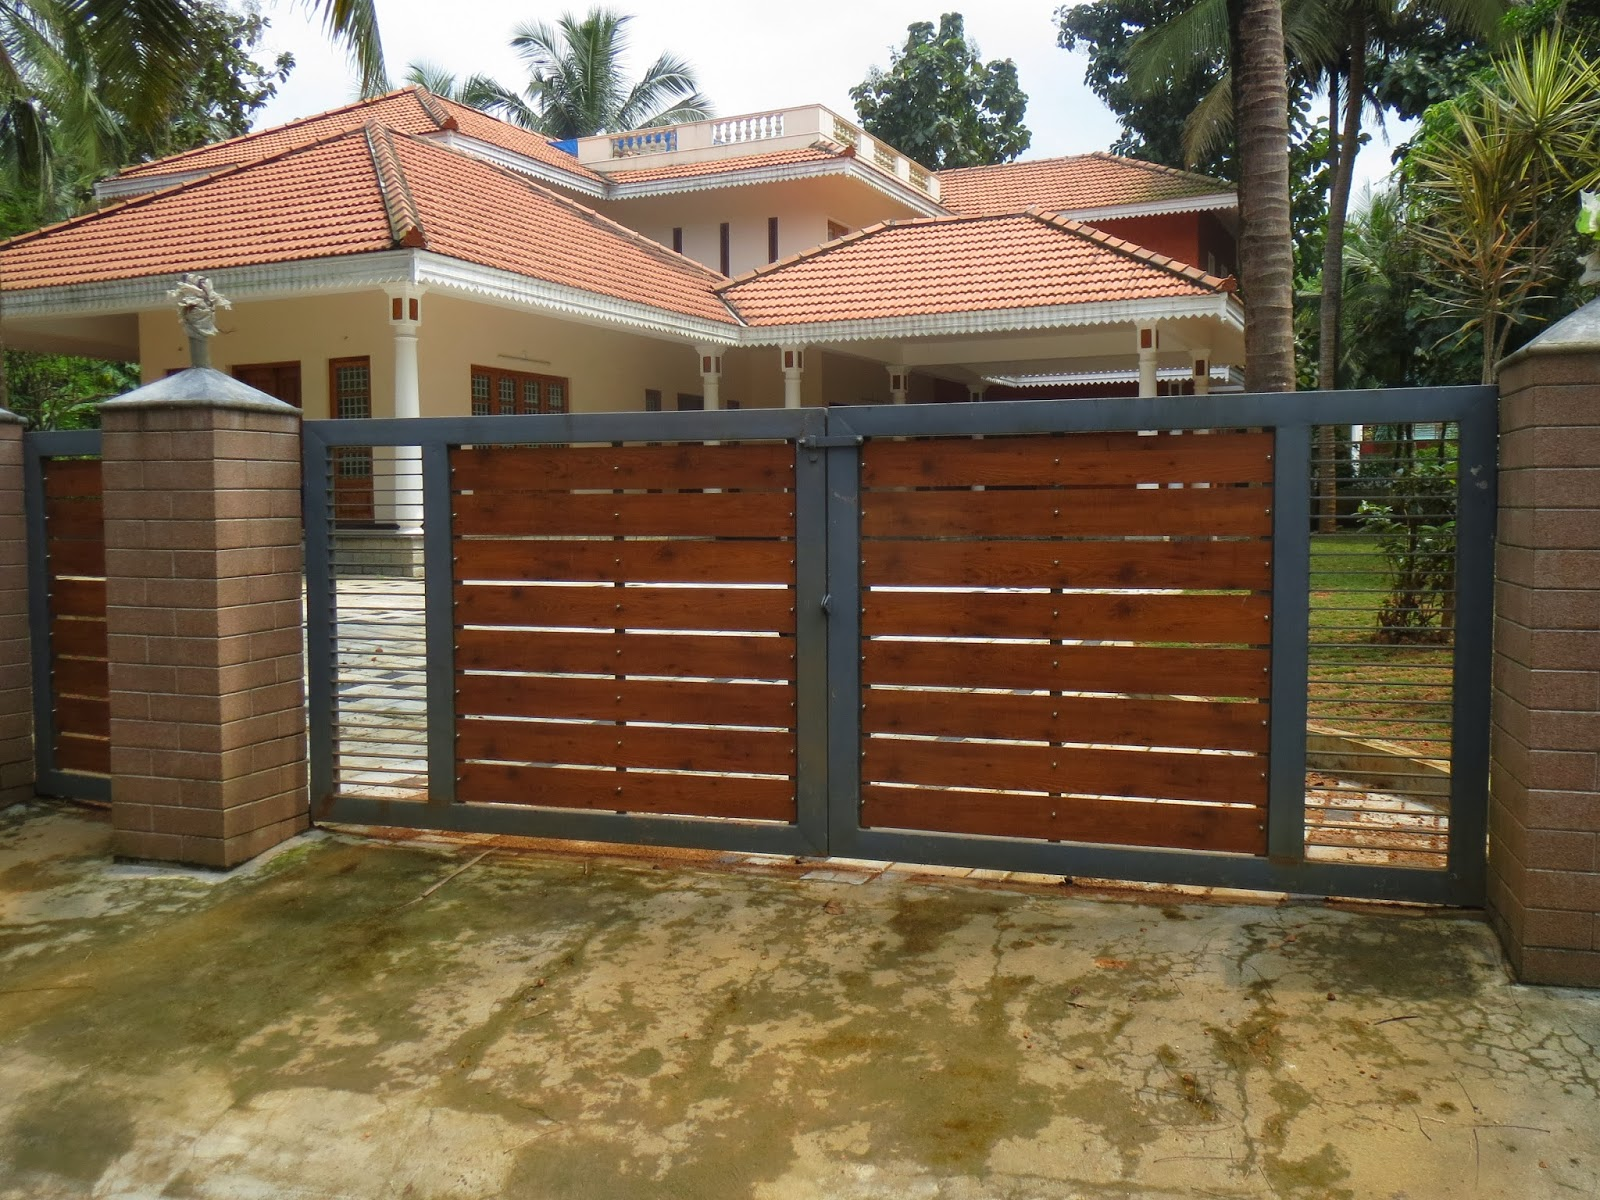 Kerala gate designs house gates in kerala india for Single gate designs for homes